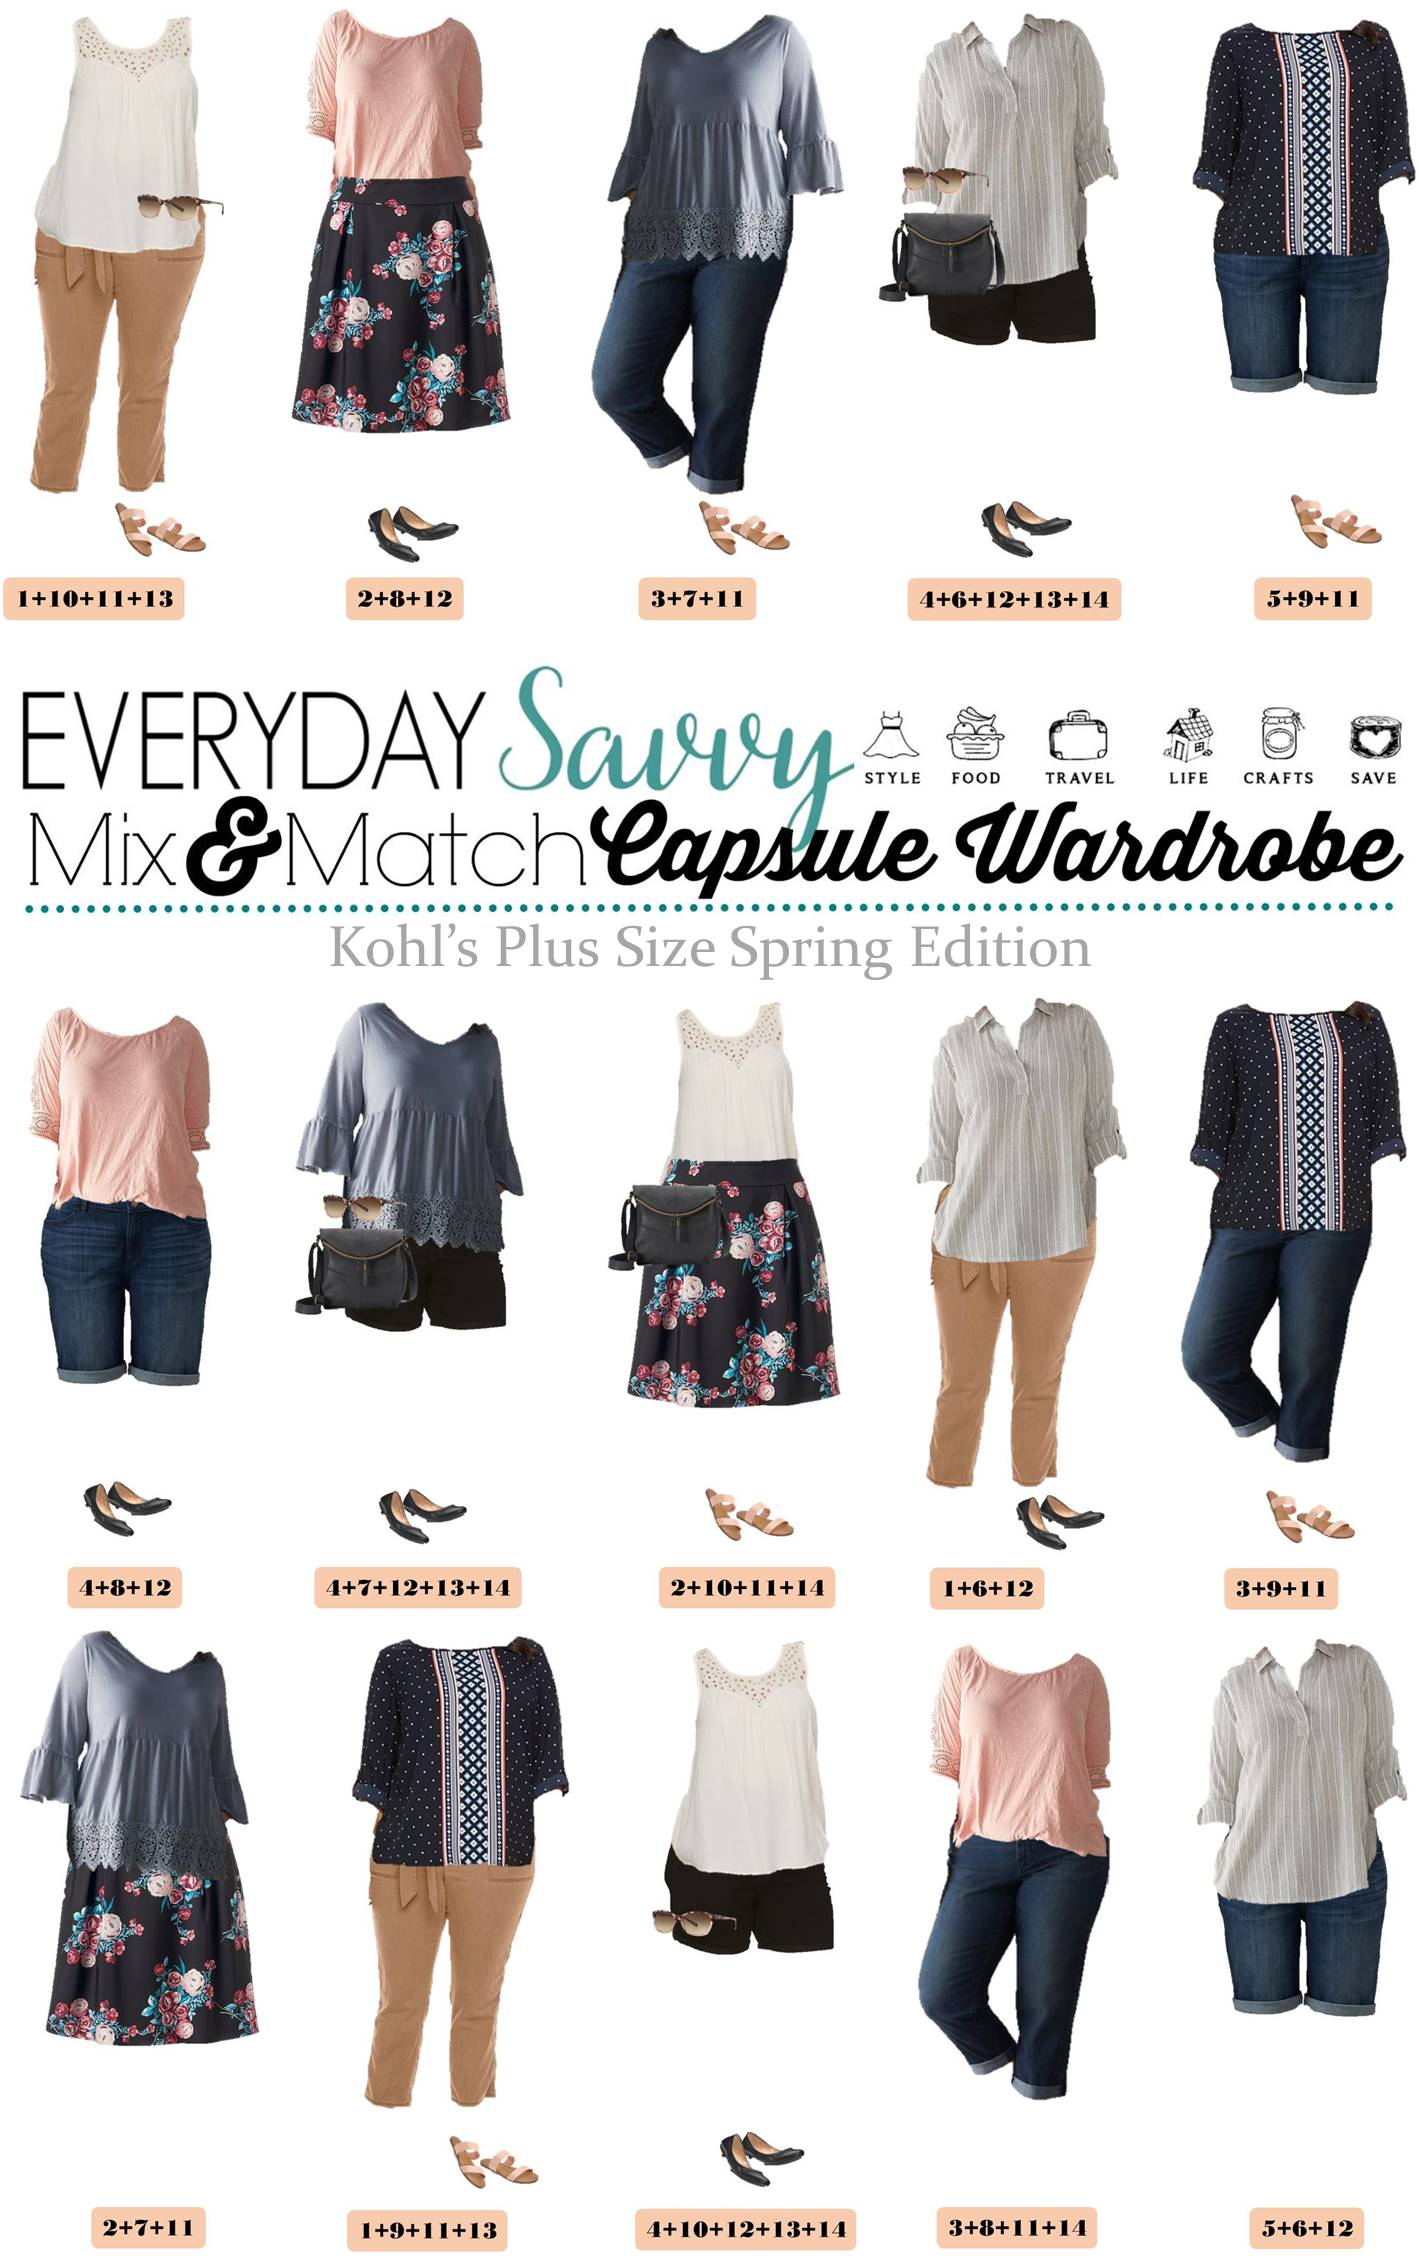 Mix & Match Plus Size Spring Outfit Ideas From Kohls